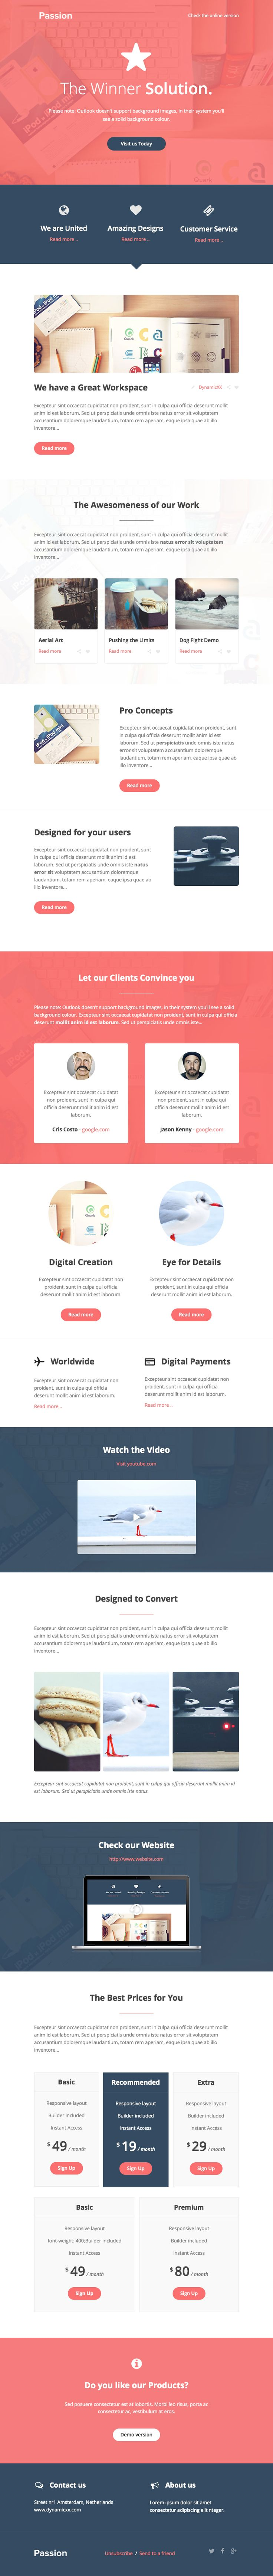 Passion + Online Template Builder by DynamicXX on Creative Market